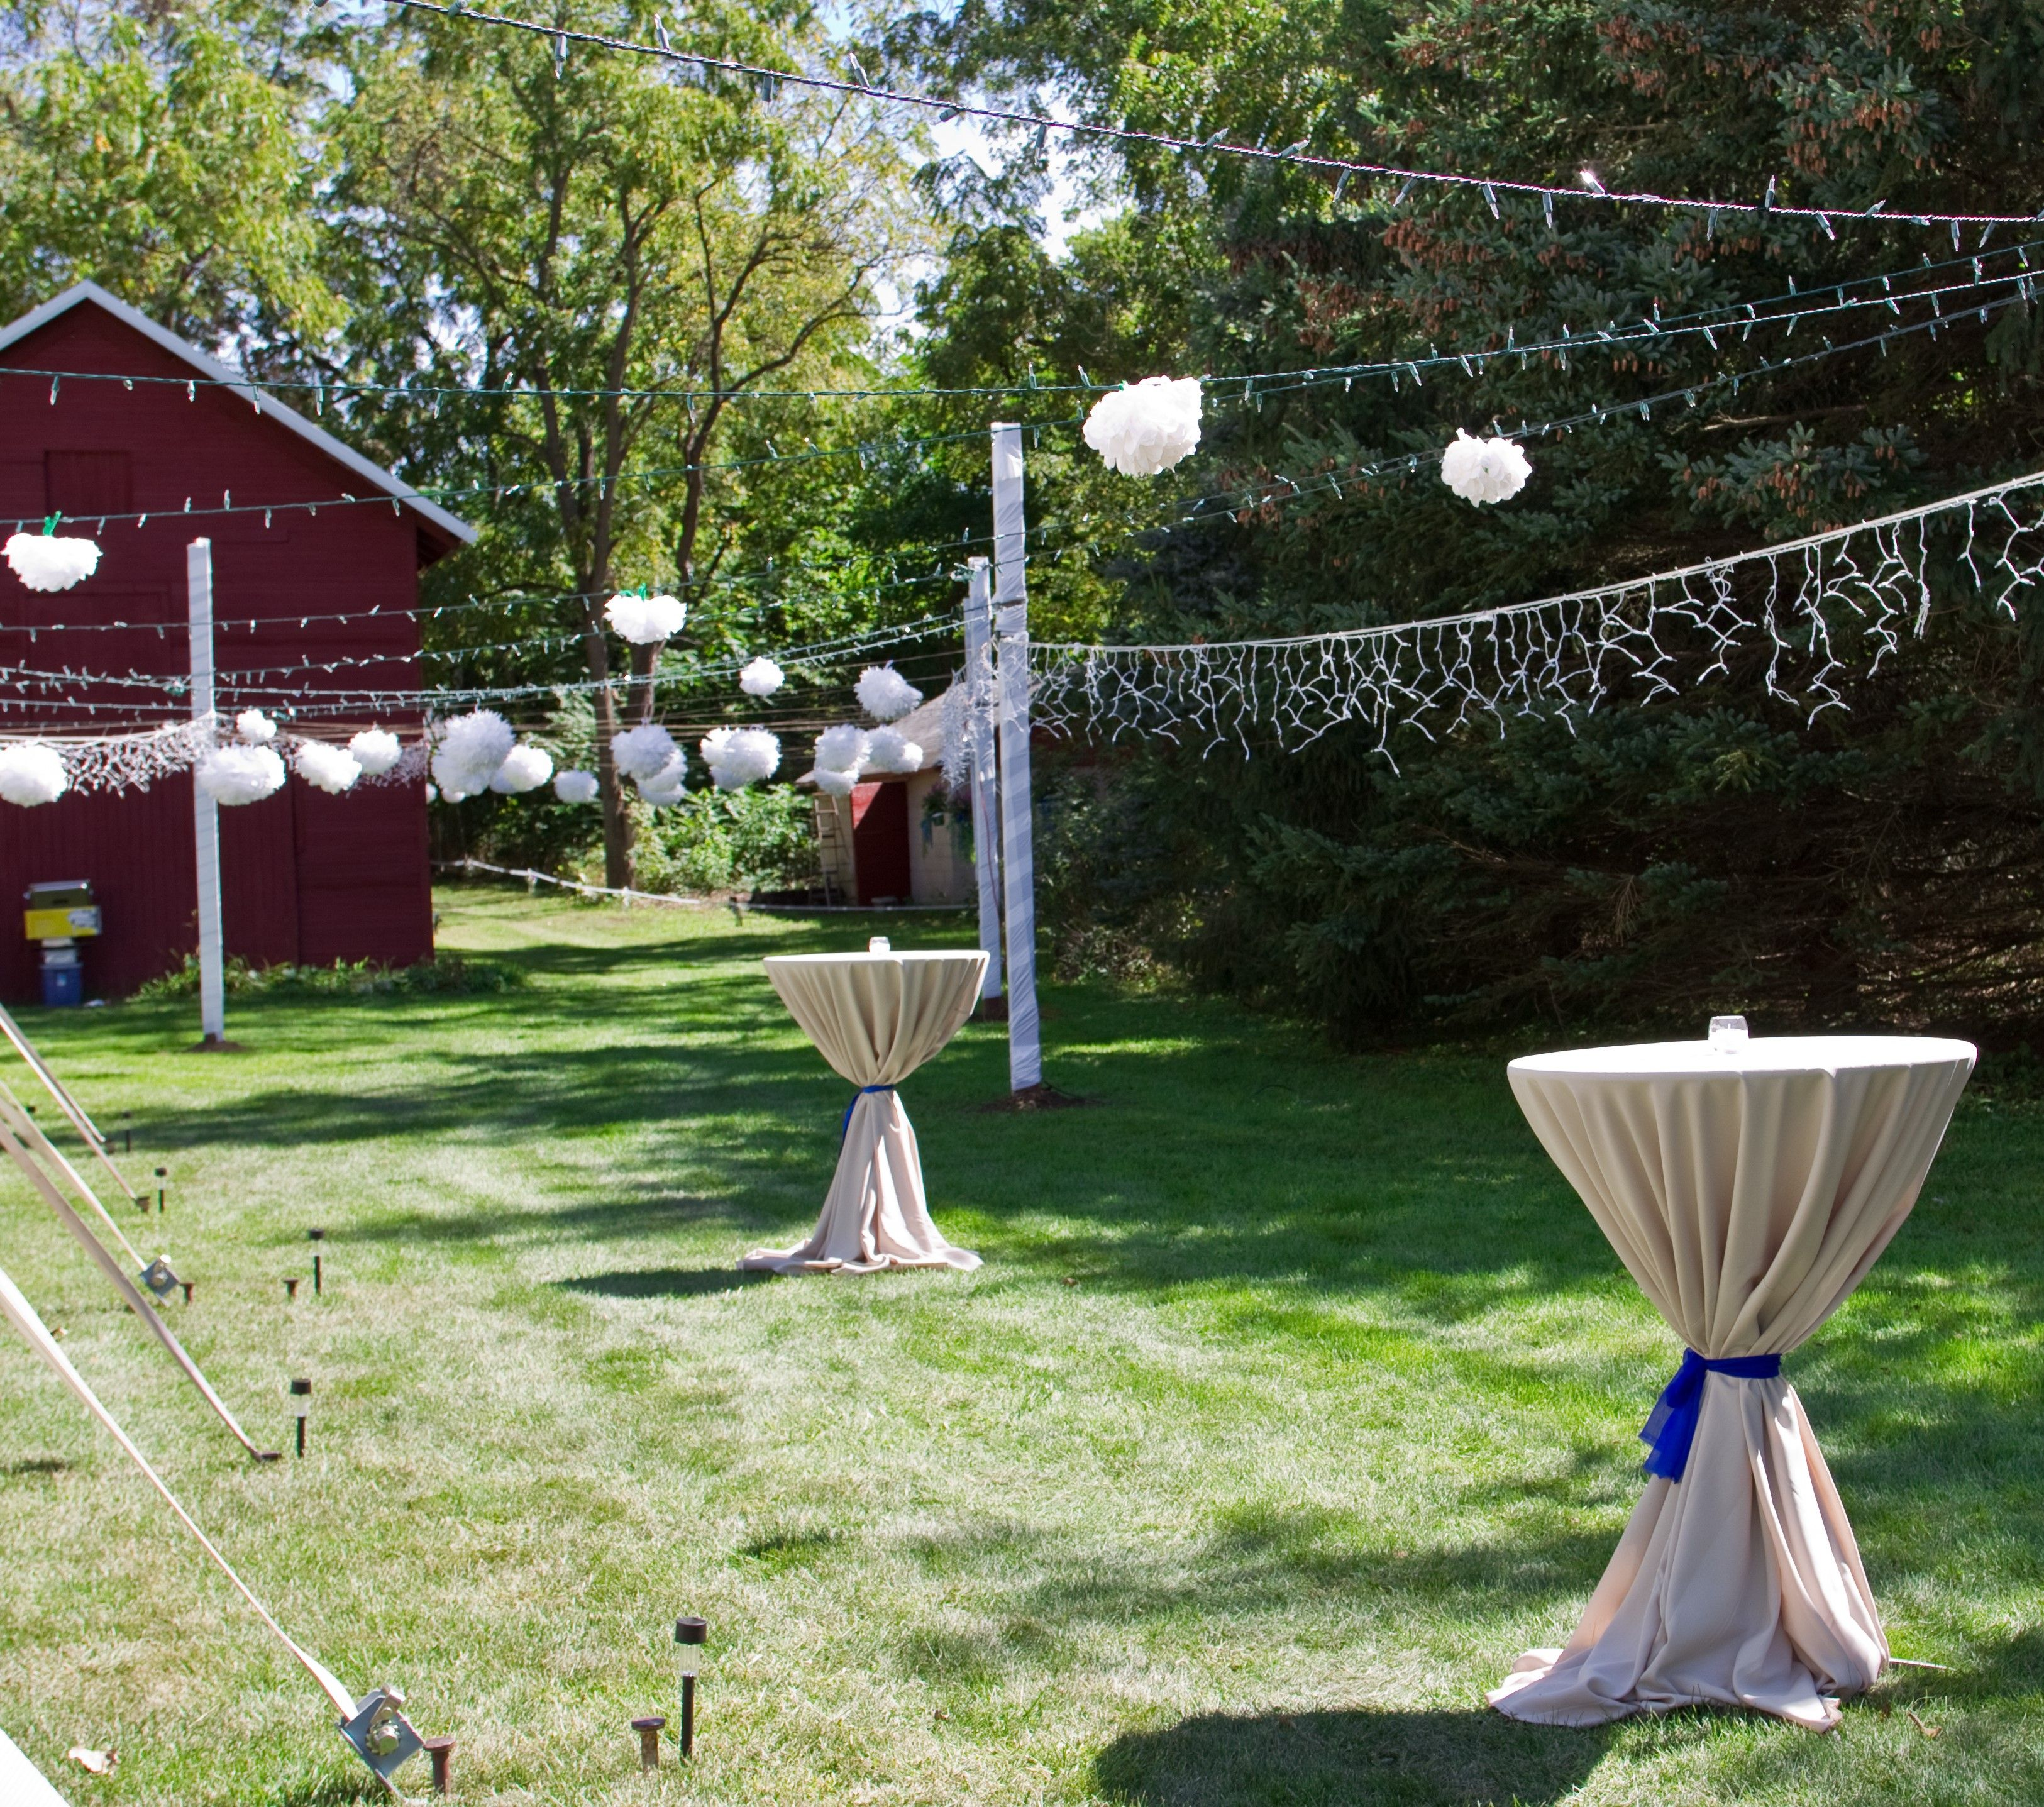 Cocktail Tables with Taupe Linens and Blue Ties String Lighting from Tent to Posts - & Cocktail Tables with Taupe Linens and Blue Ties String Lighting ...